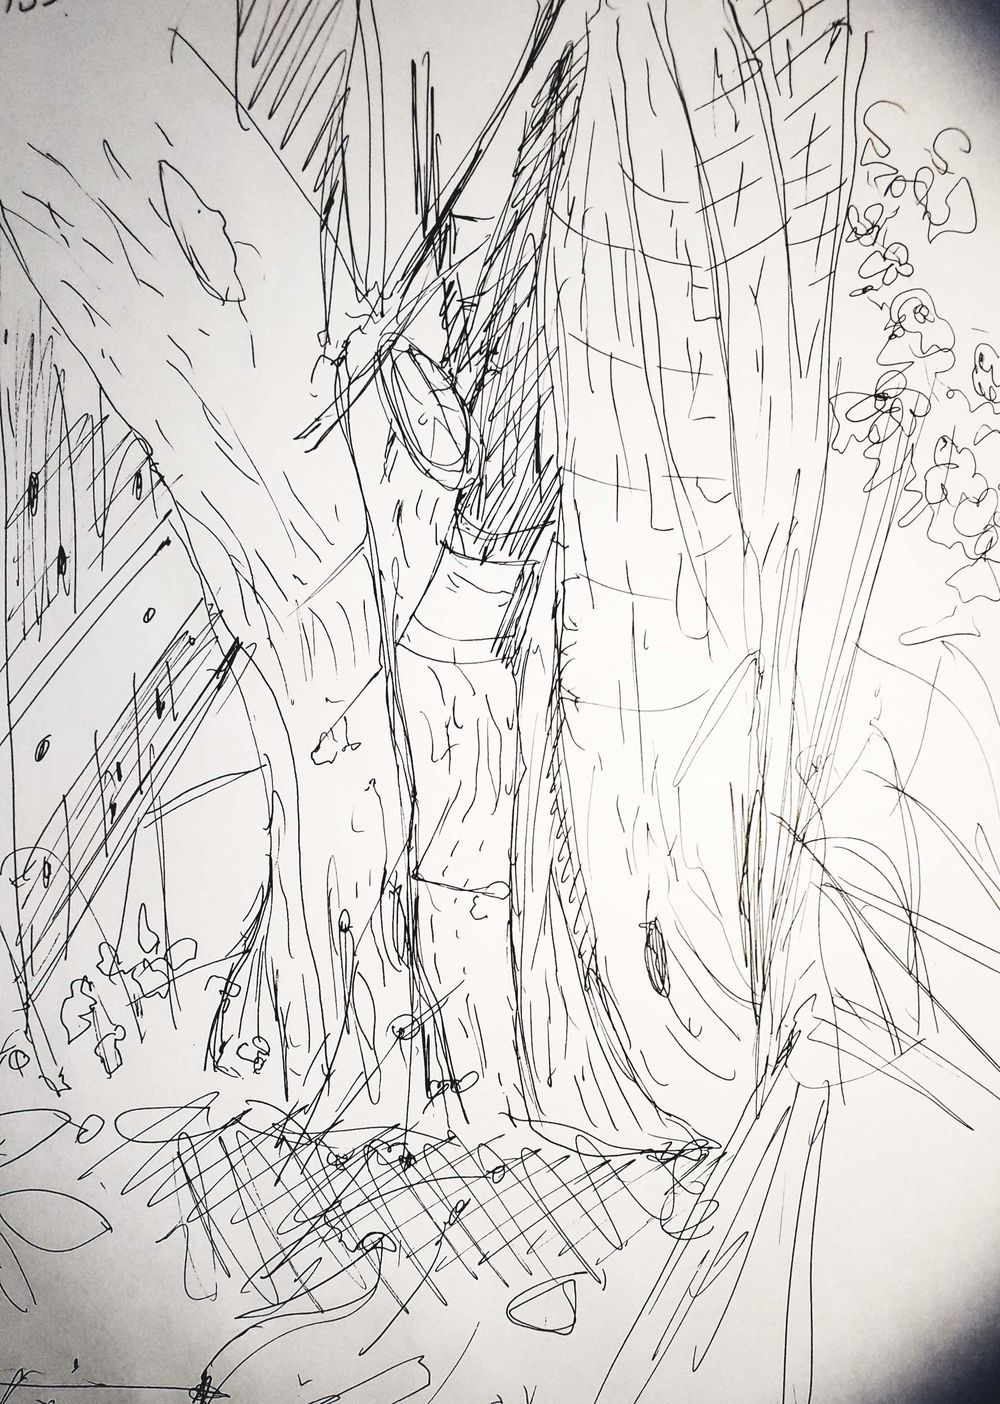 Daily art: trees - image 5 - student project